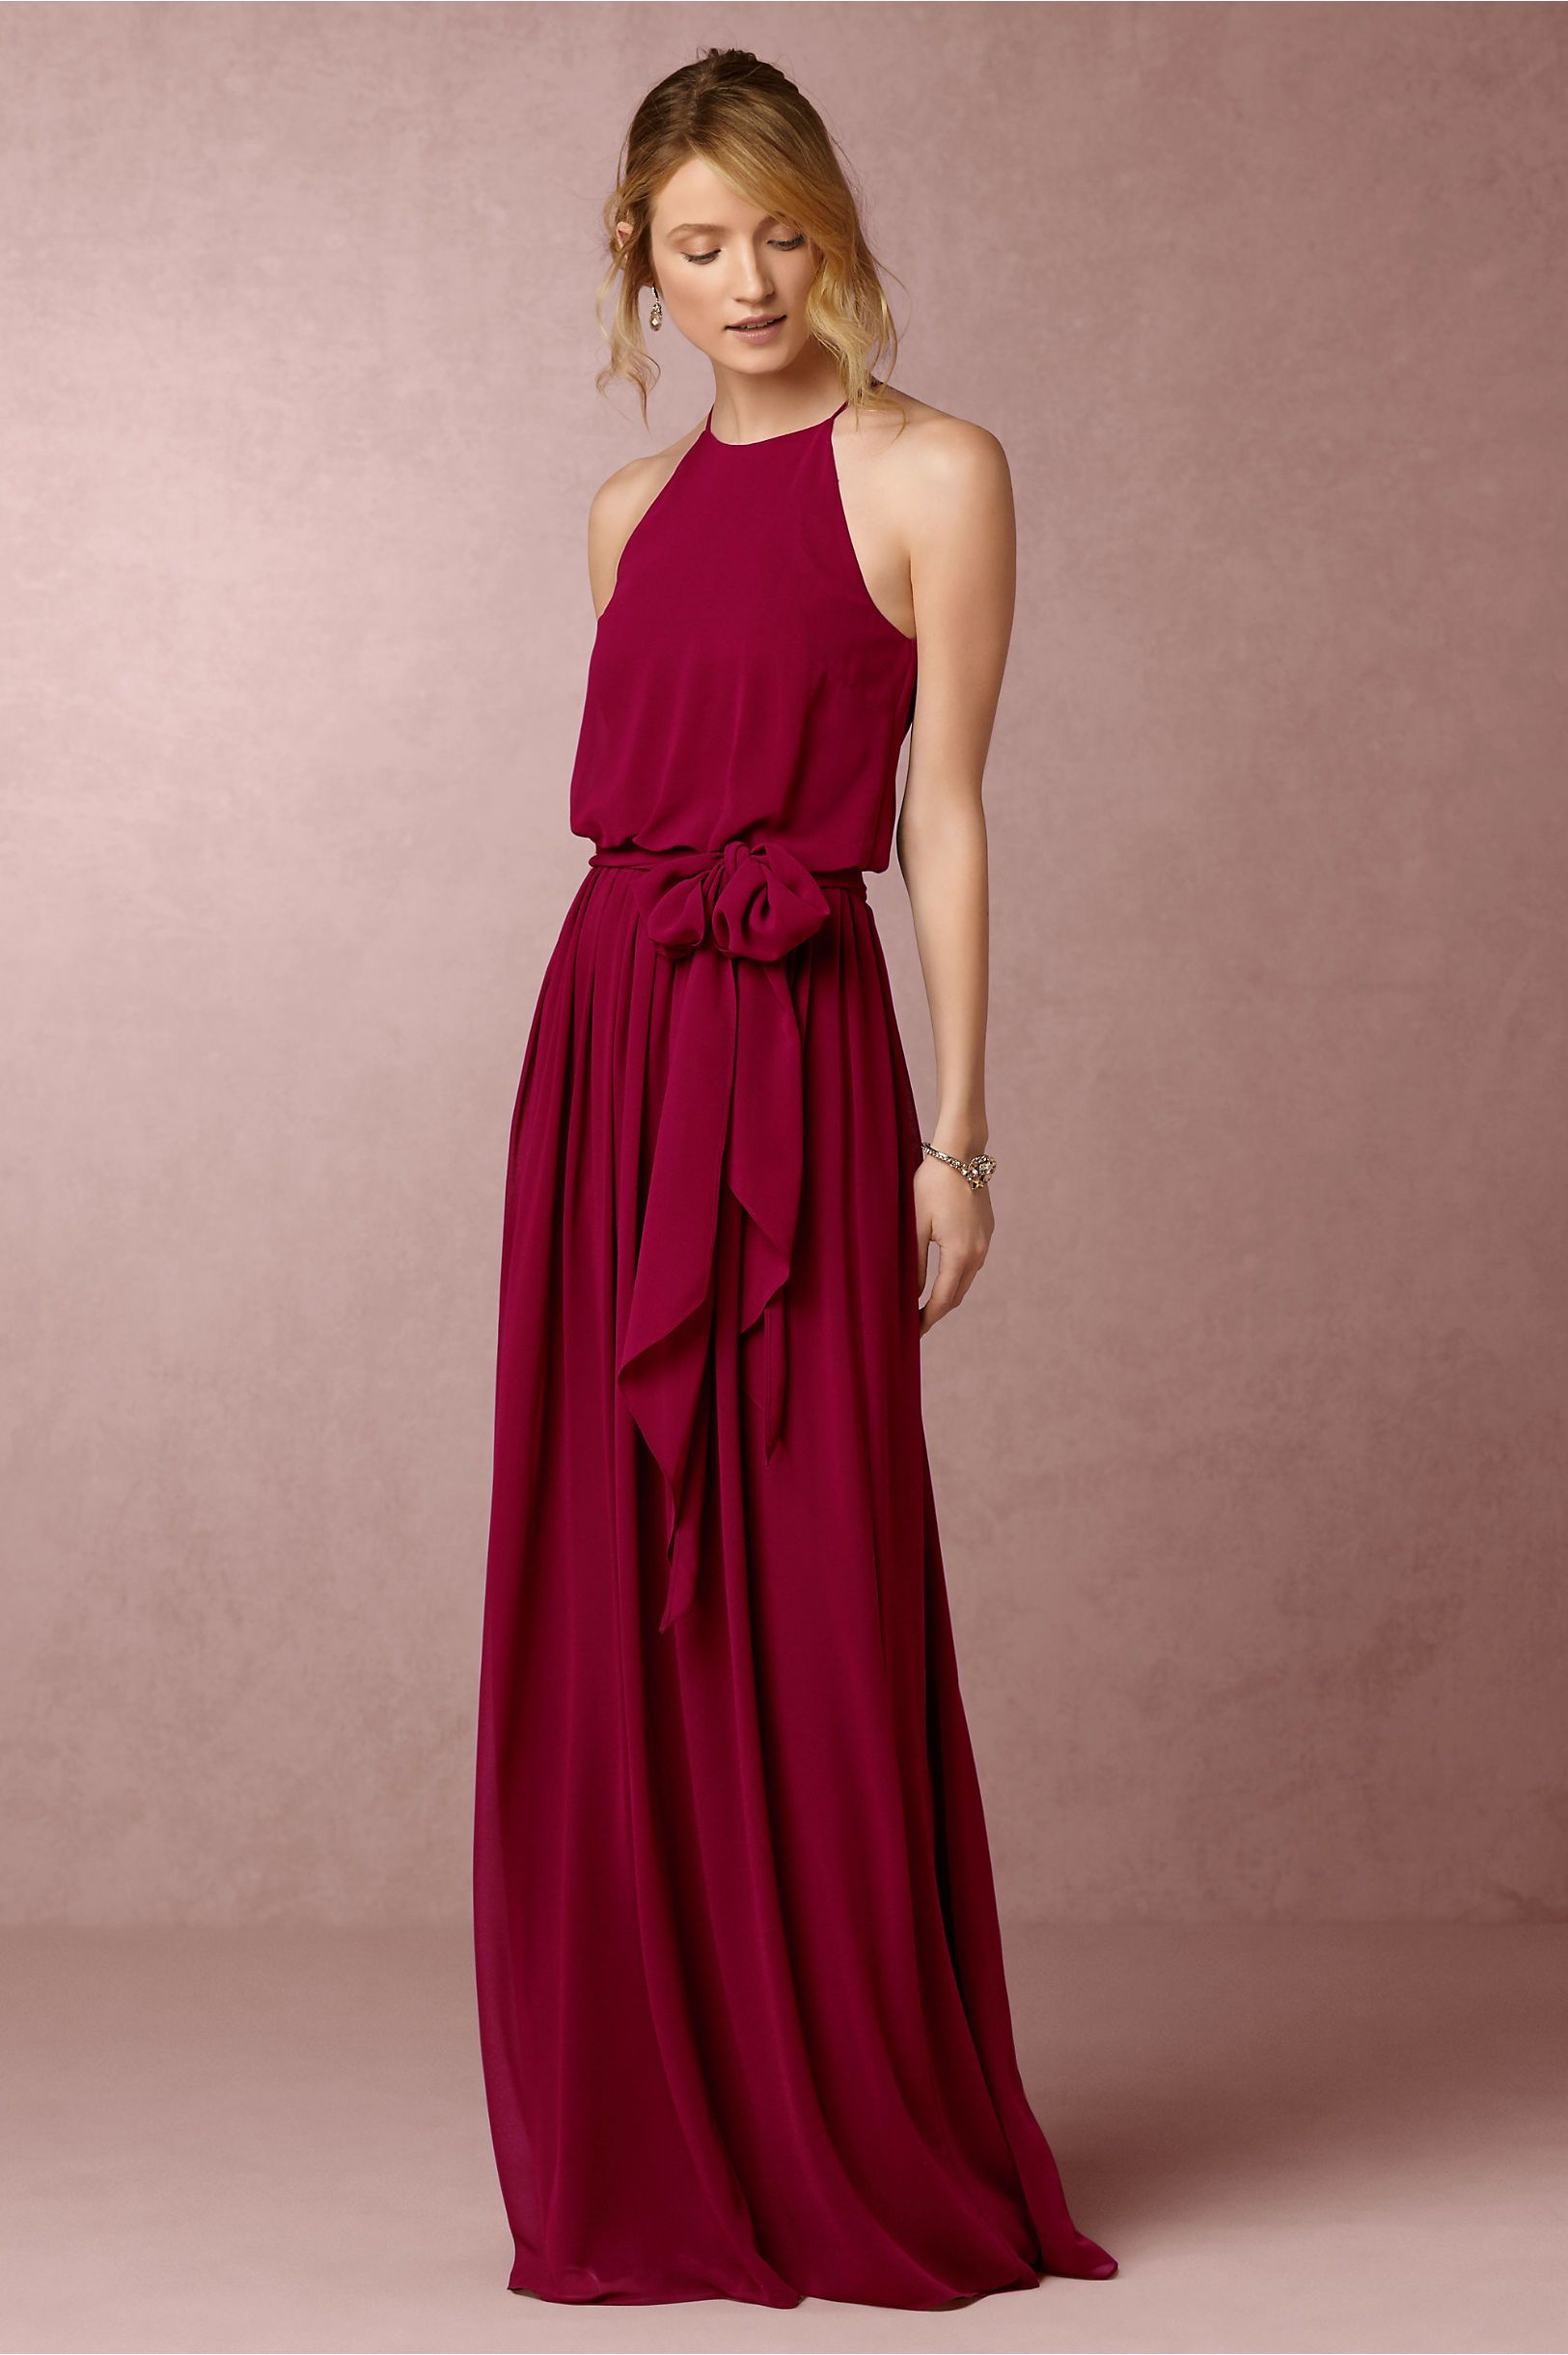 Bhldn Alana Dress In Bridesmaids Bridesmaid Dresses Long